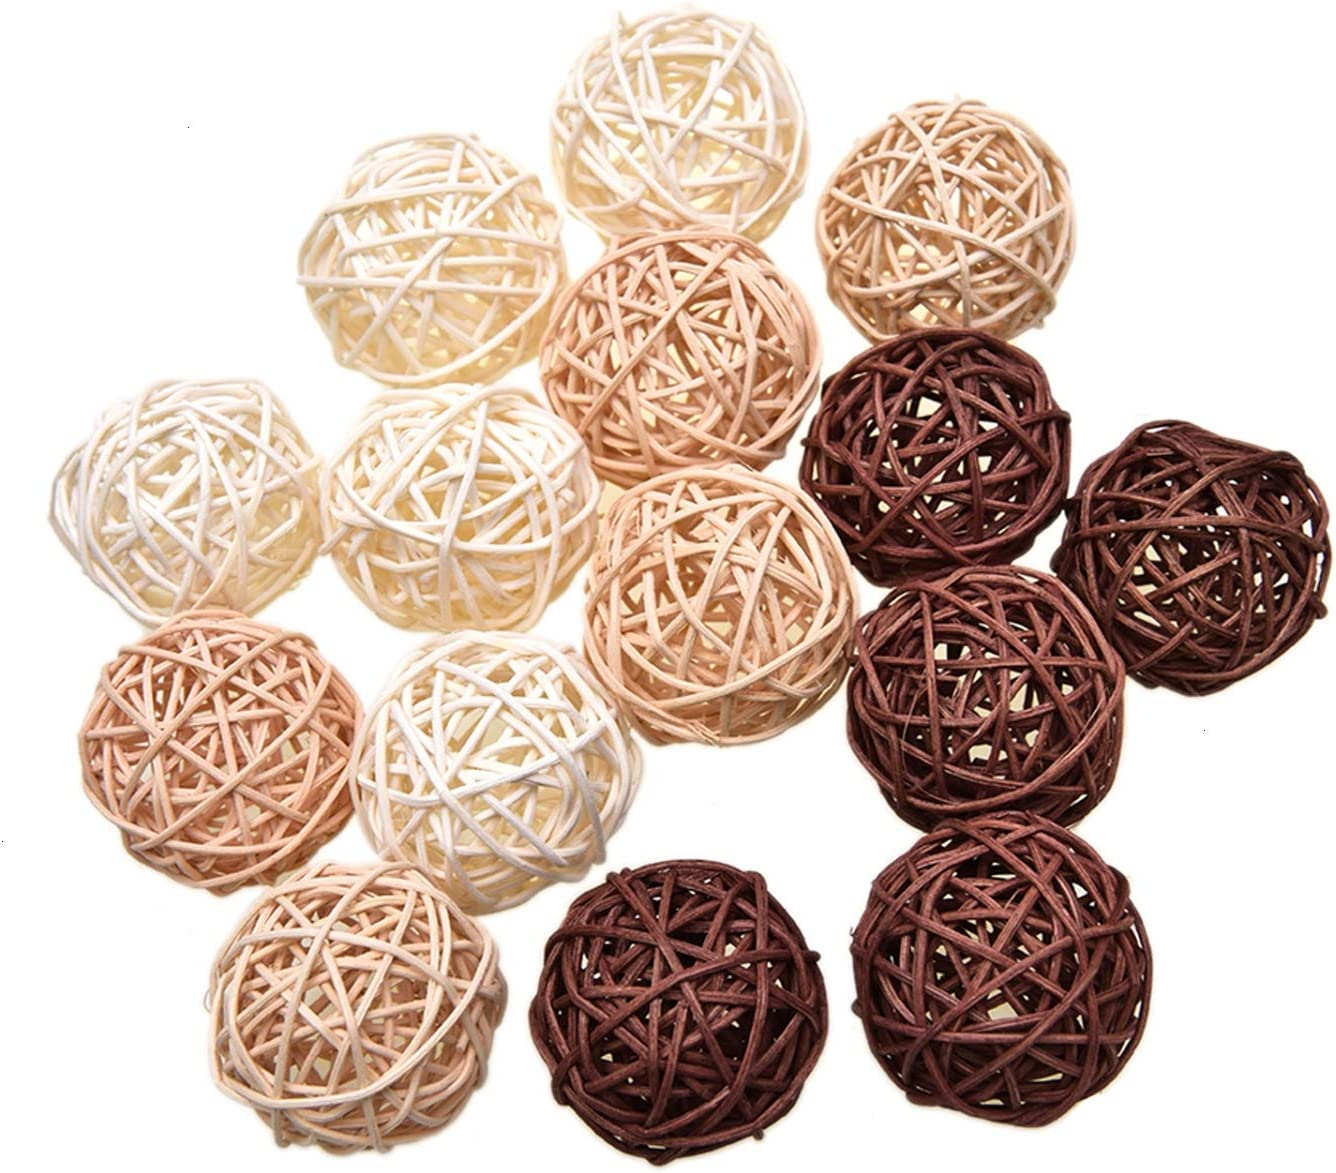 Pomeat 15pcs Wicker Rattan Balls Decorative Ball Orbs Vase Fillers Table Decor, Wedding Party Decoration